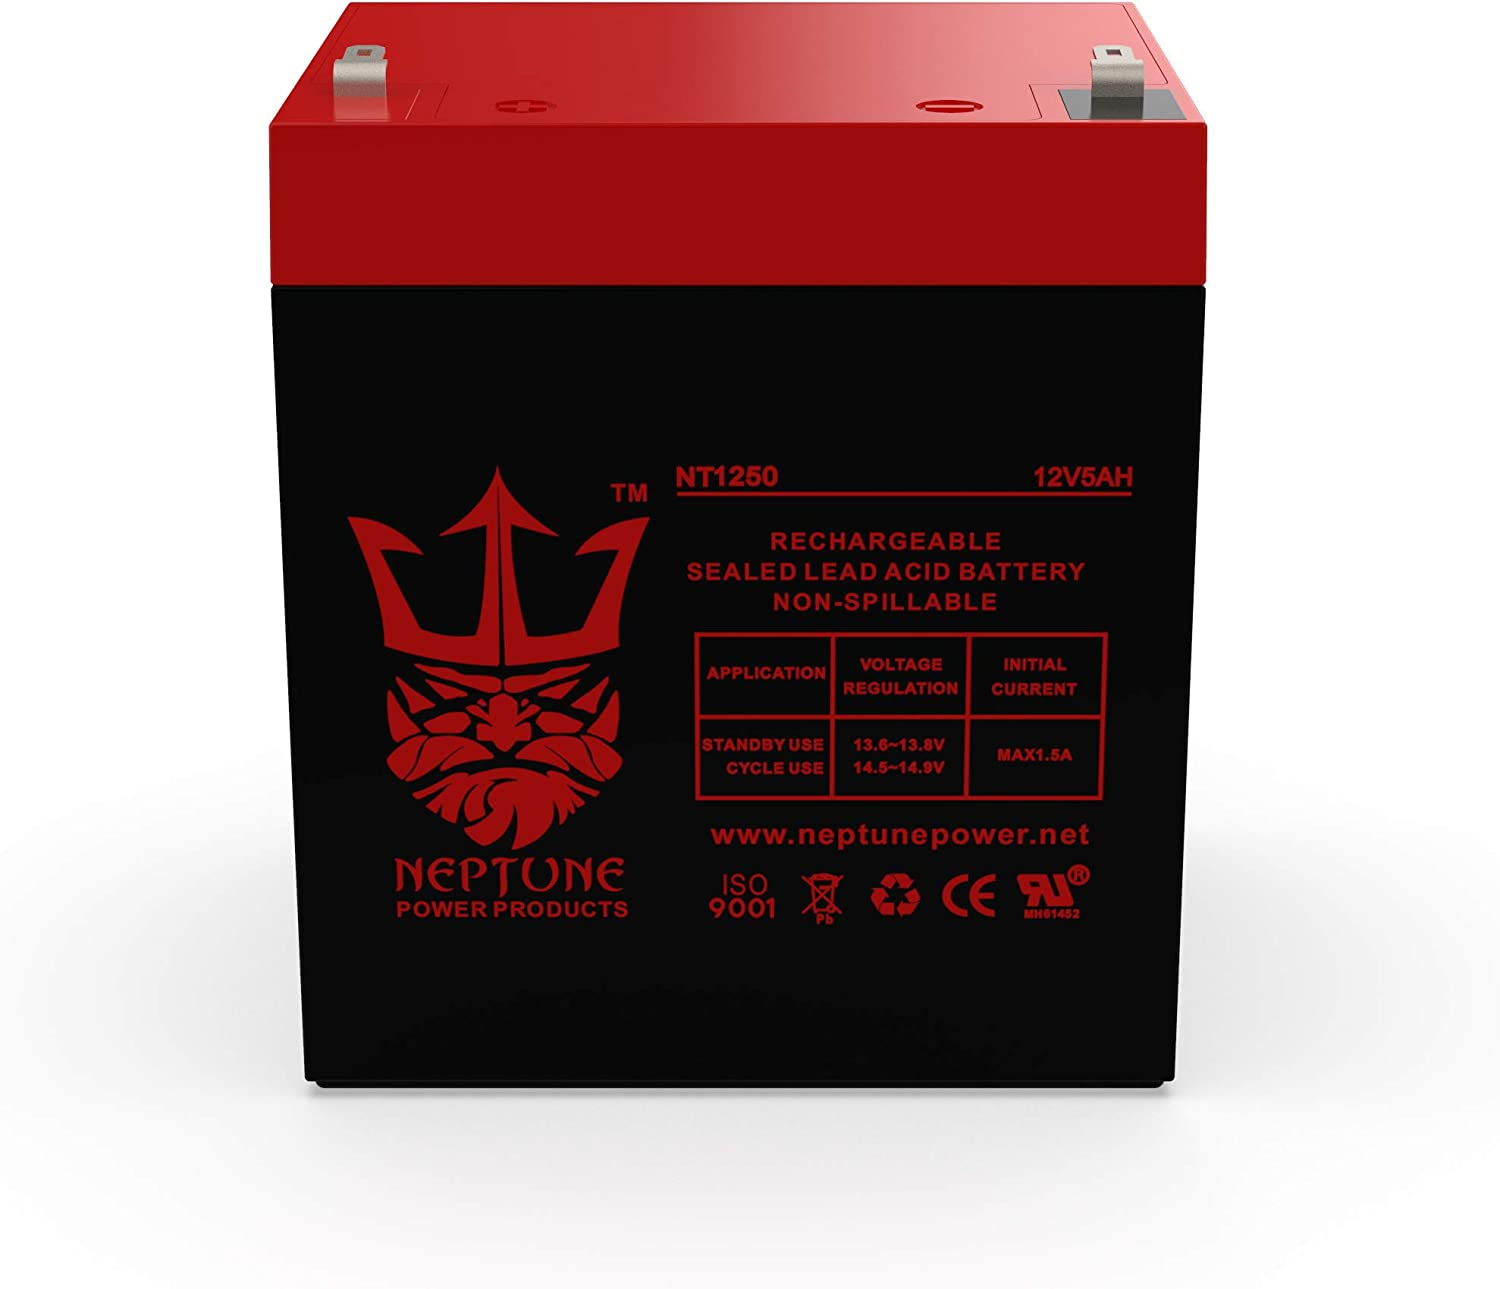 Charity Battery CB1250 12V 5AH Alarm System Battery Back Up Vista 20P ADT Brand Product